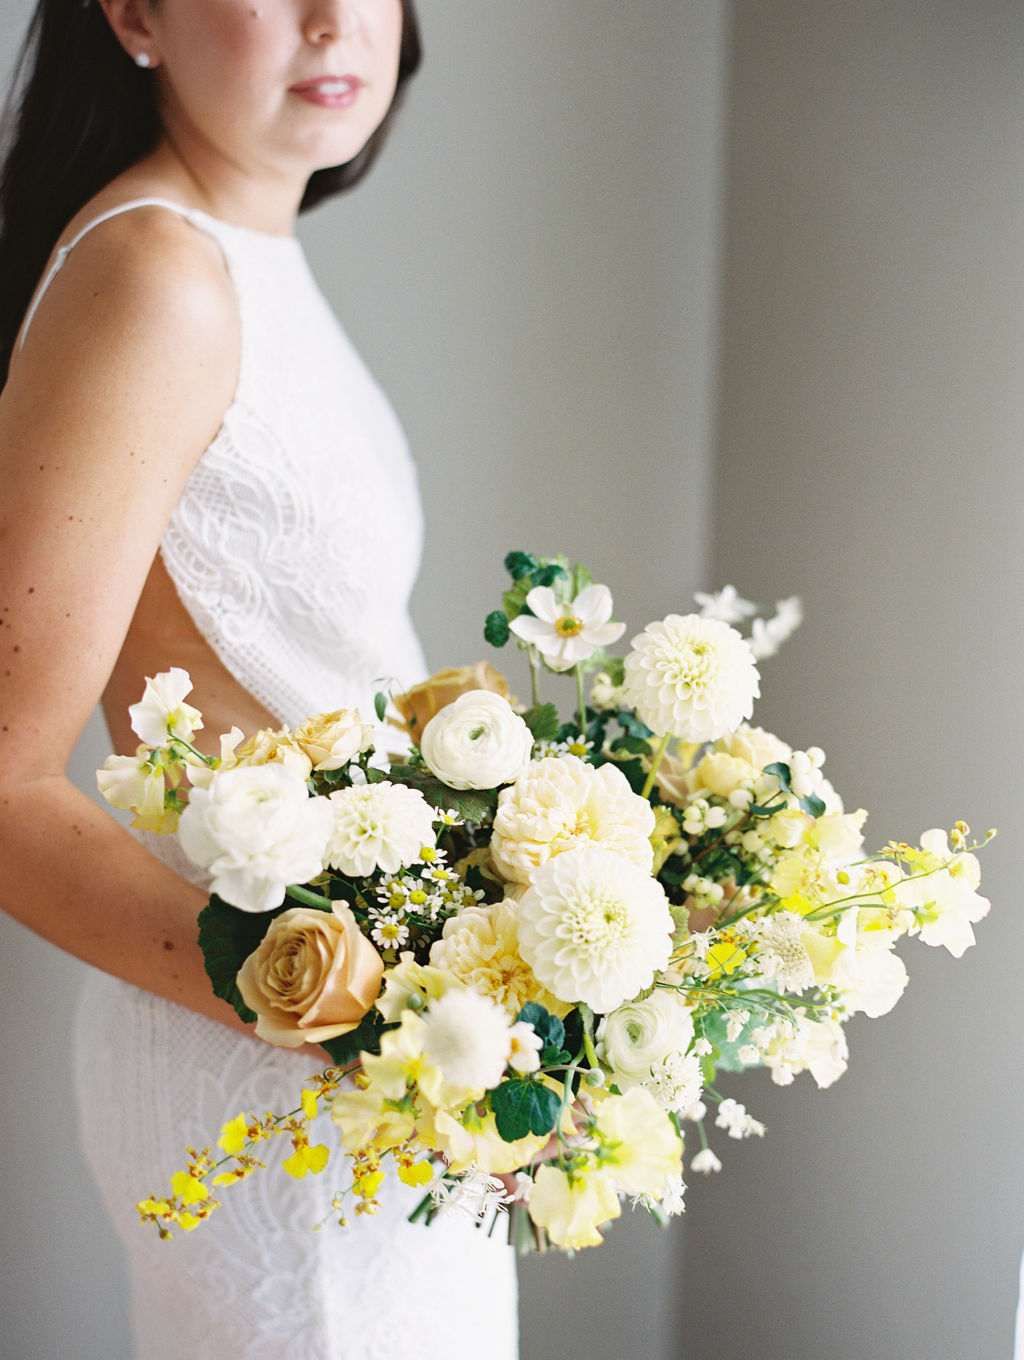 bride holding white and yellow floral wedding bouquet